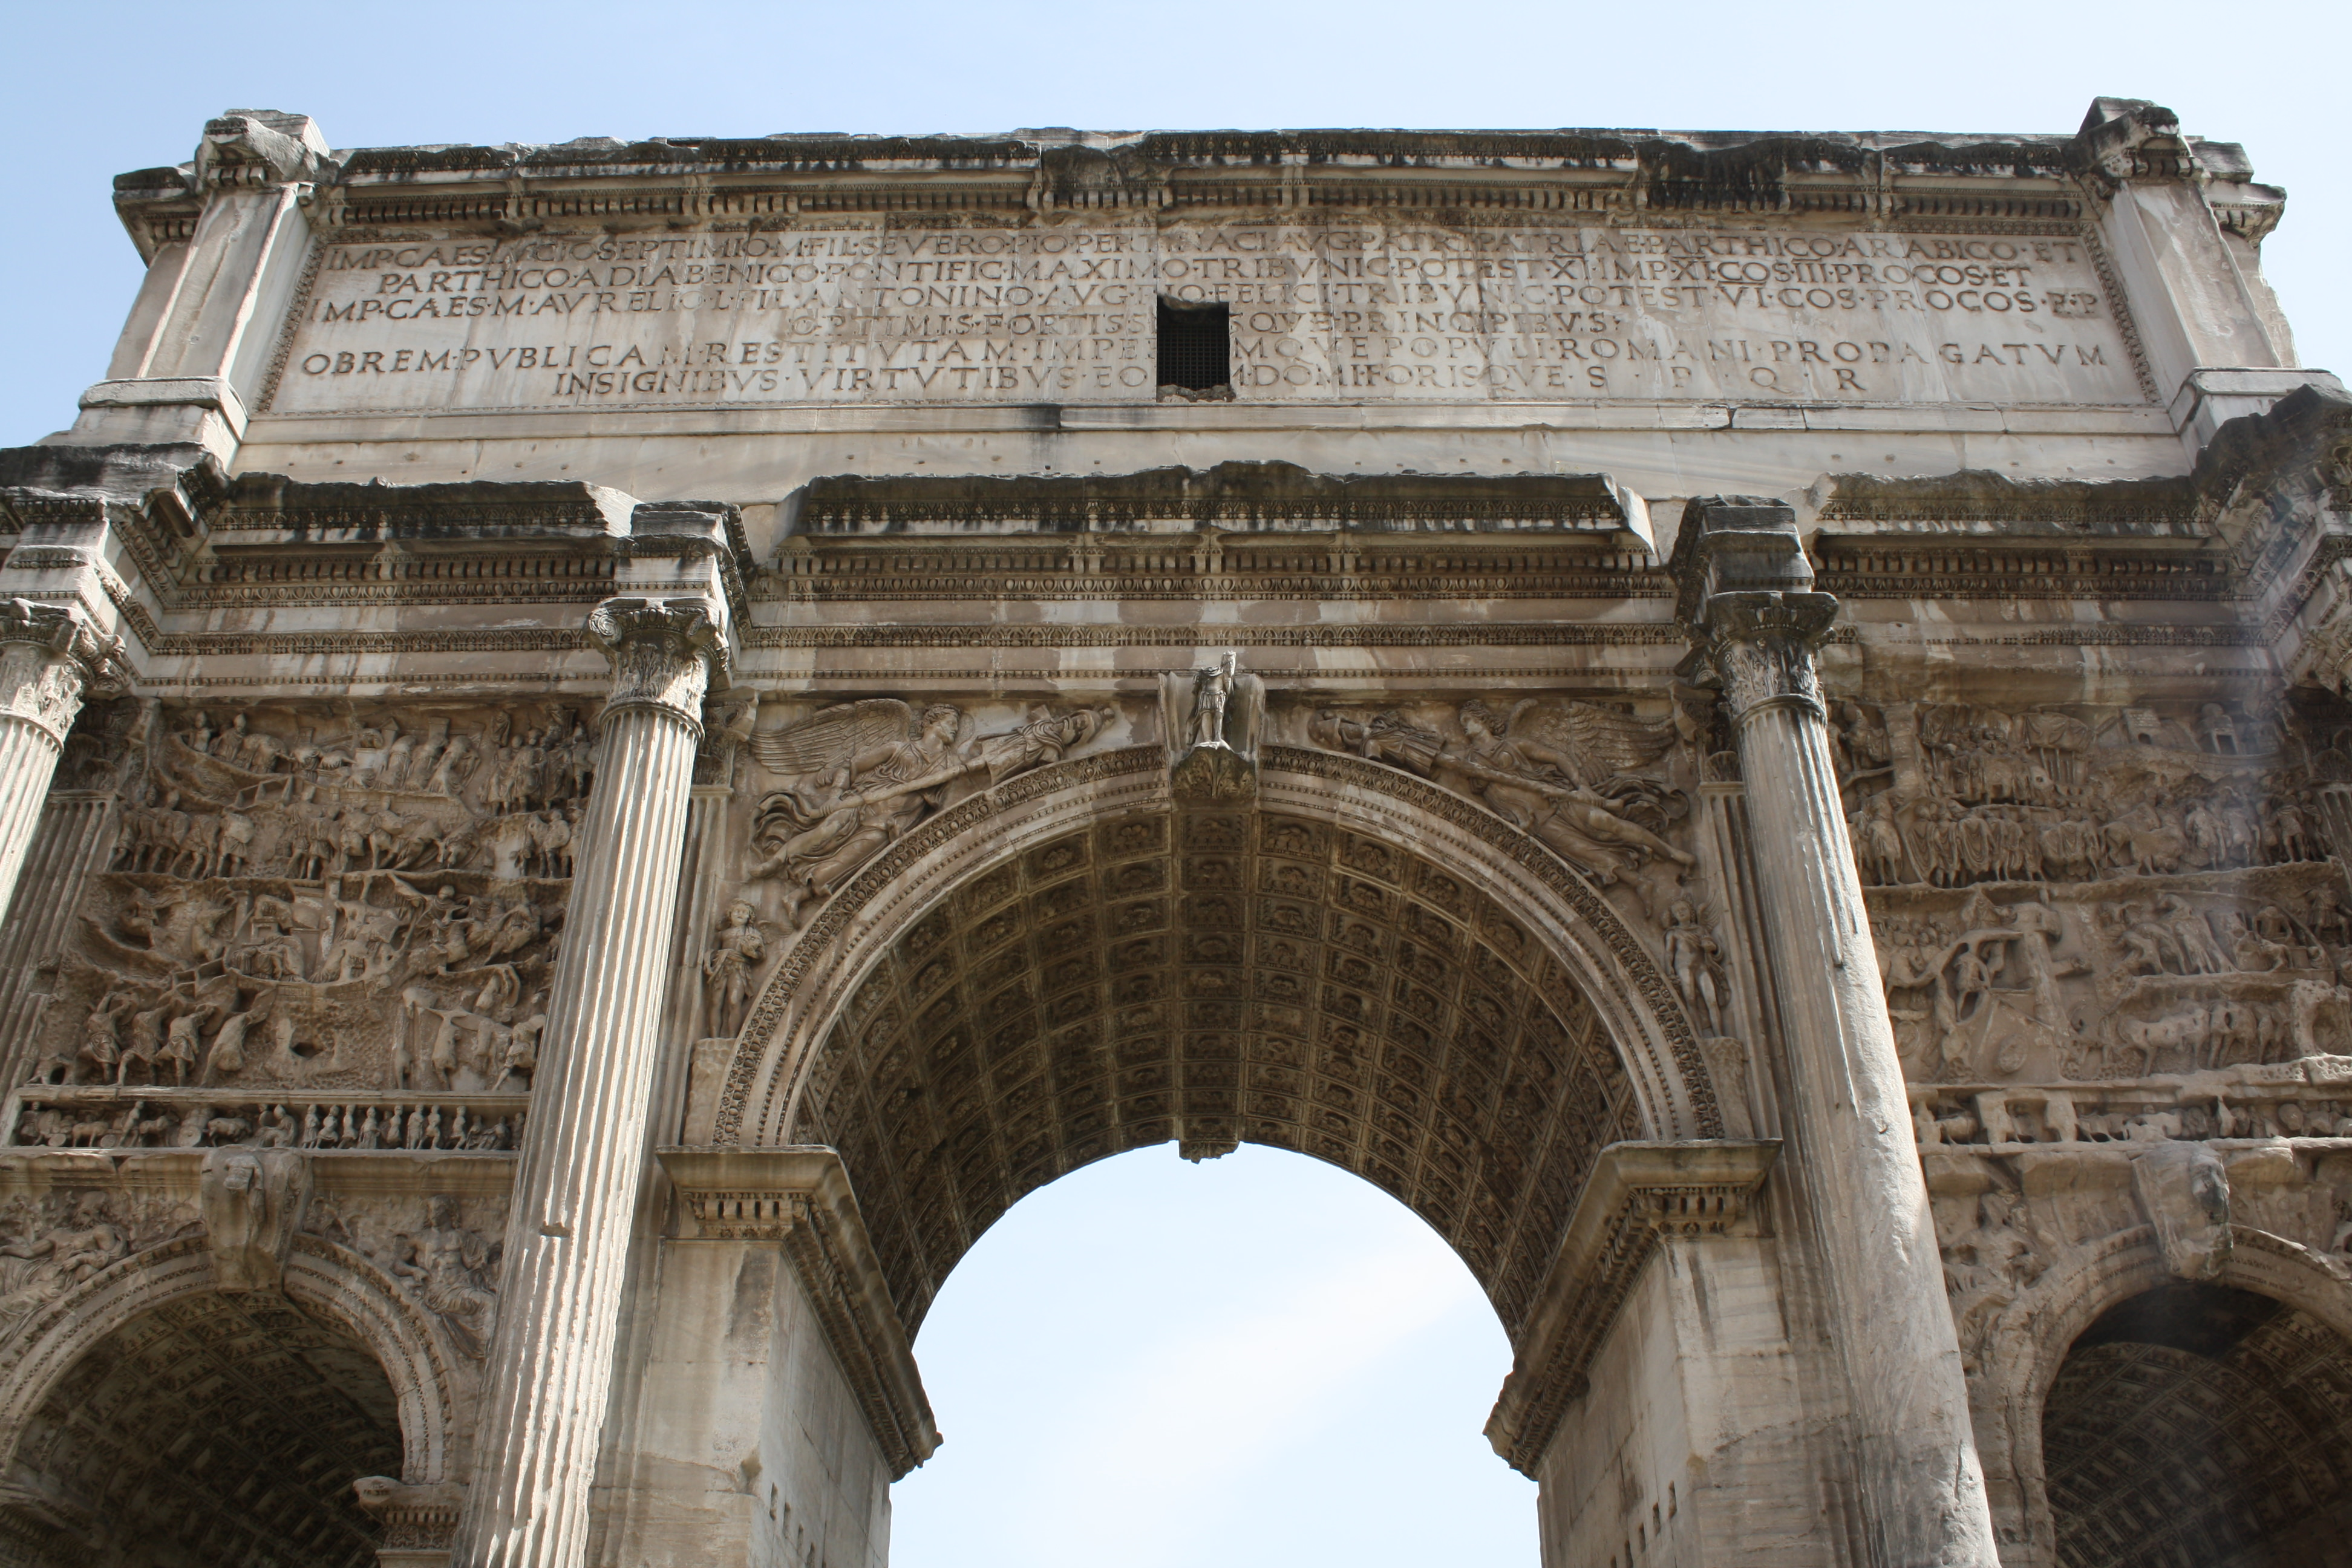 an overview of the greek and roman arches and architecture Roman architecture had a tremendous influence on modern buildings of the western civilization the widespread use of columns, domes, and arches.